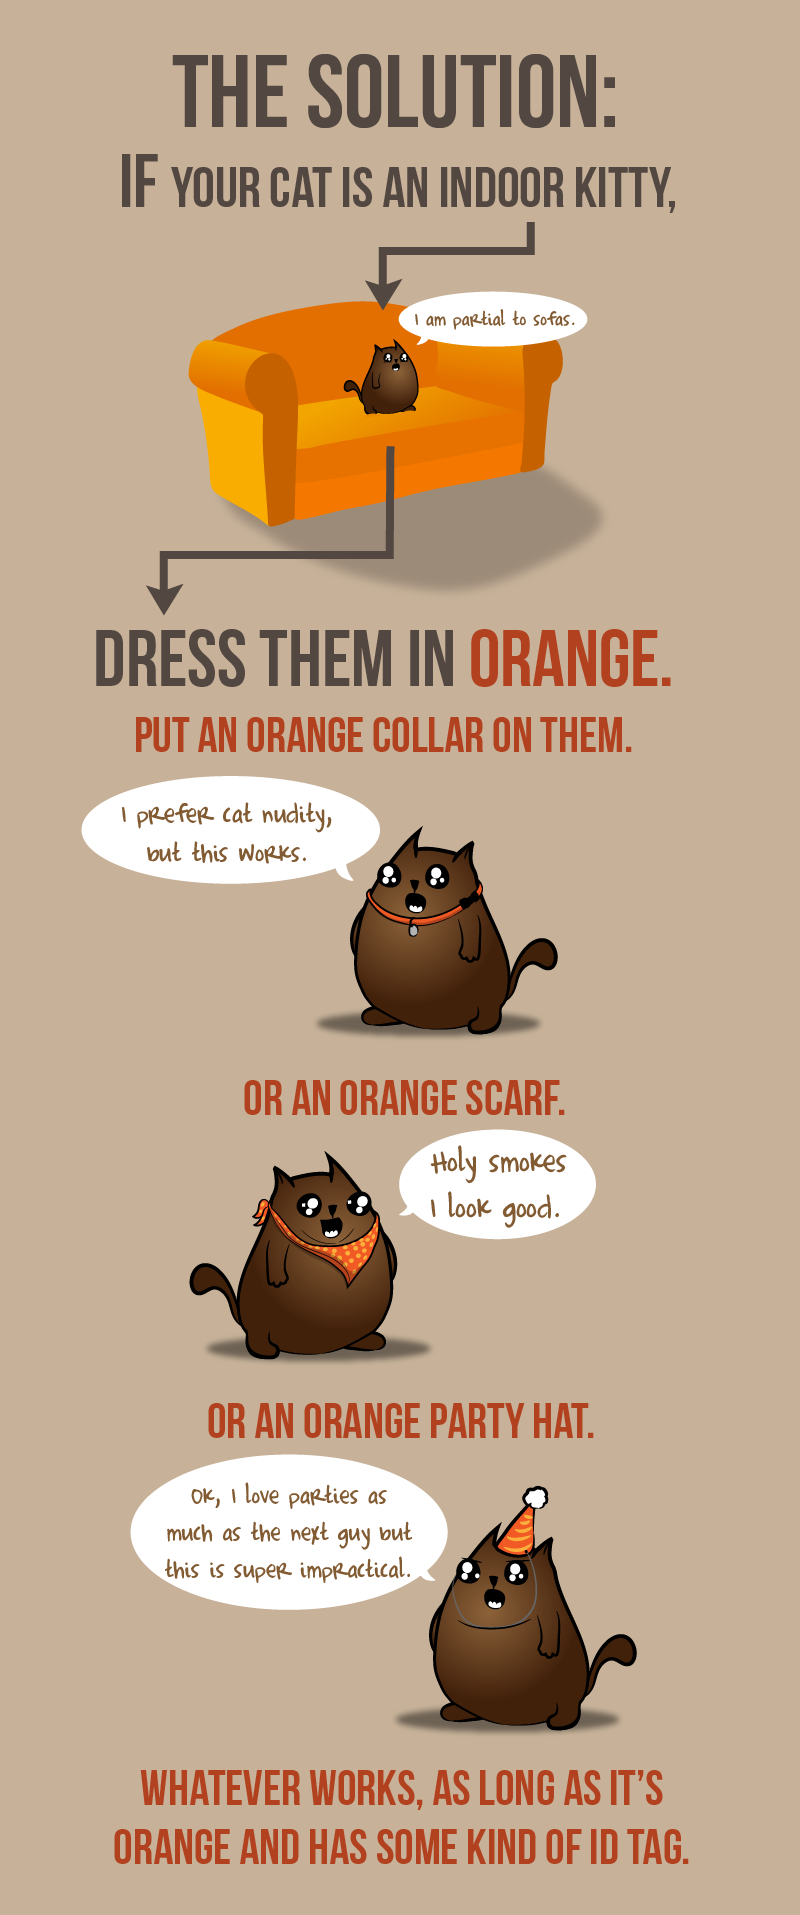 Is your kitty a convict? - The Oatmeal